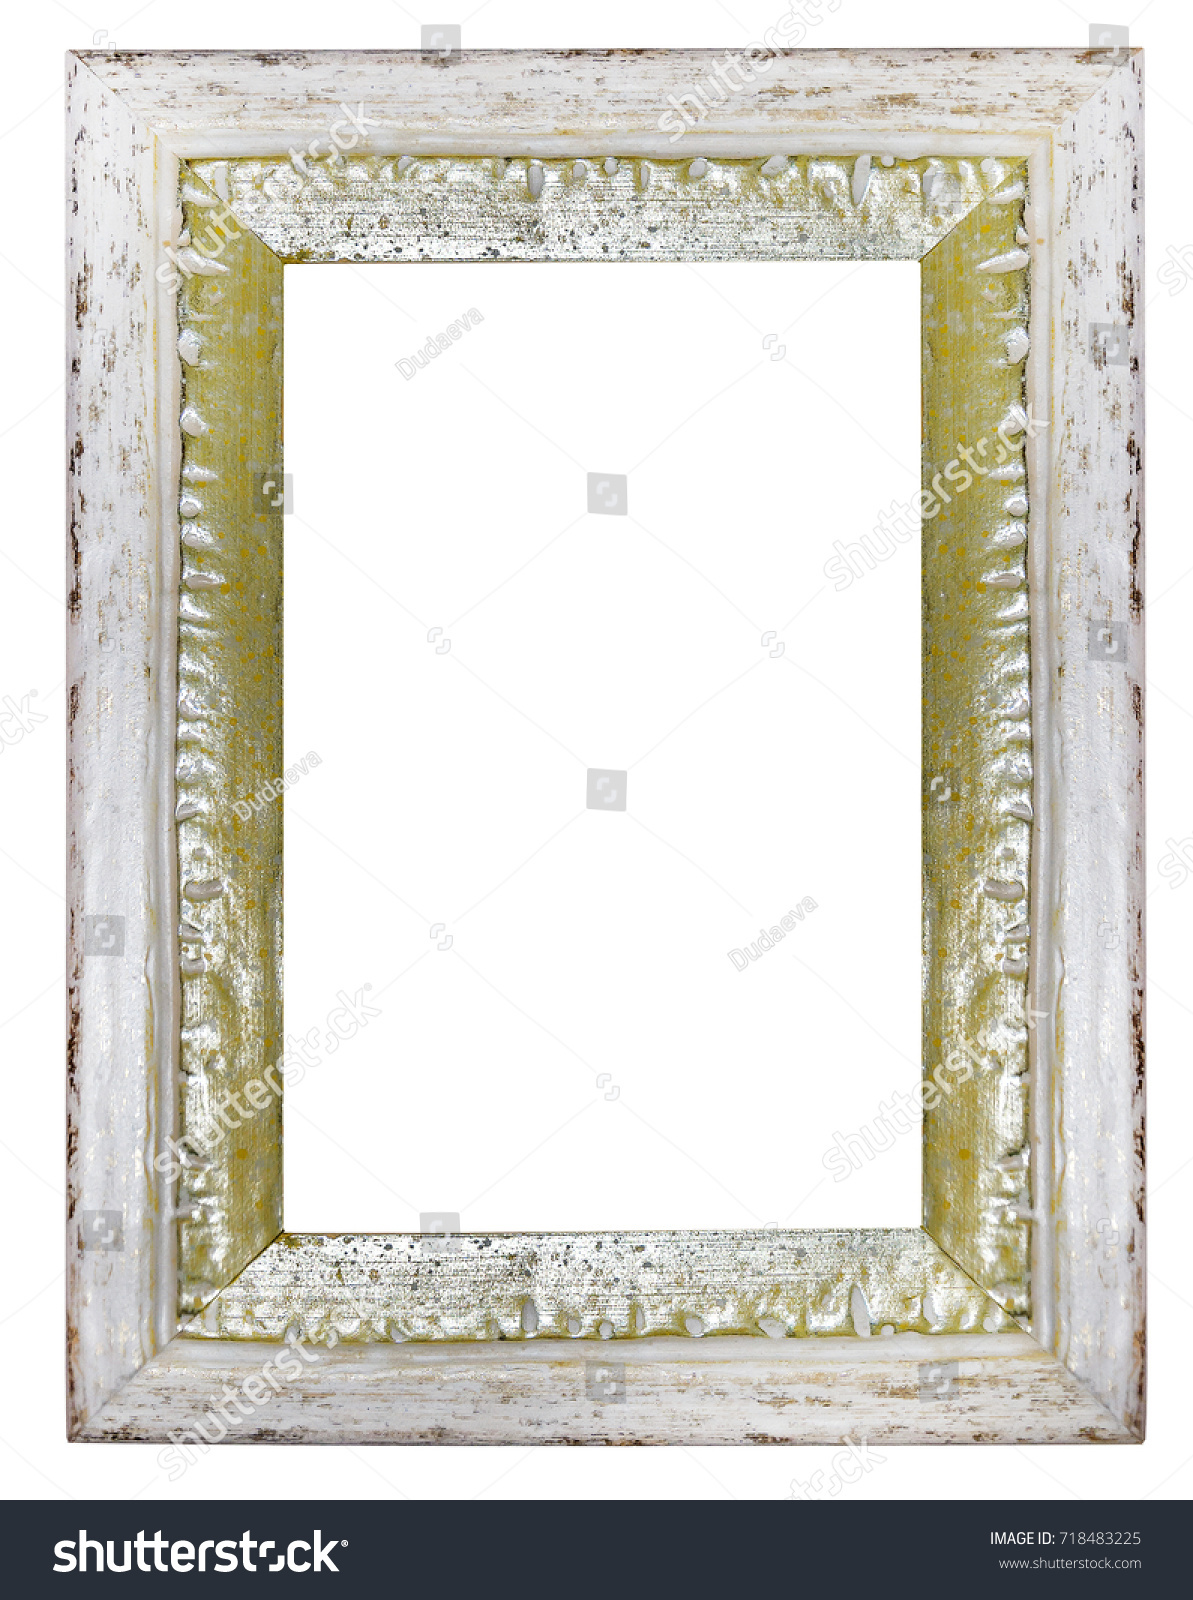 Classic white gold frame picture isolated stock photo 718483225 classic white and gold frame for picture isolated on white background jeuxipadfo Gallery